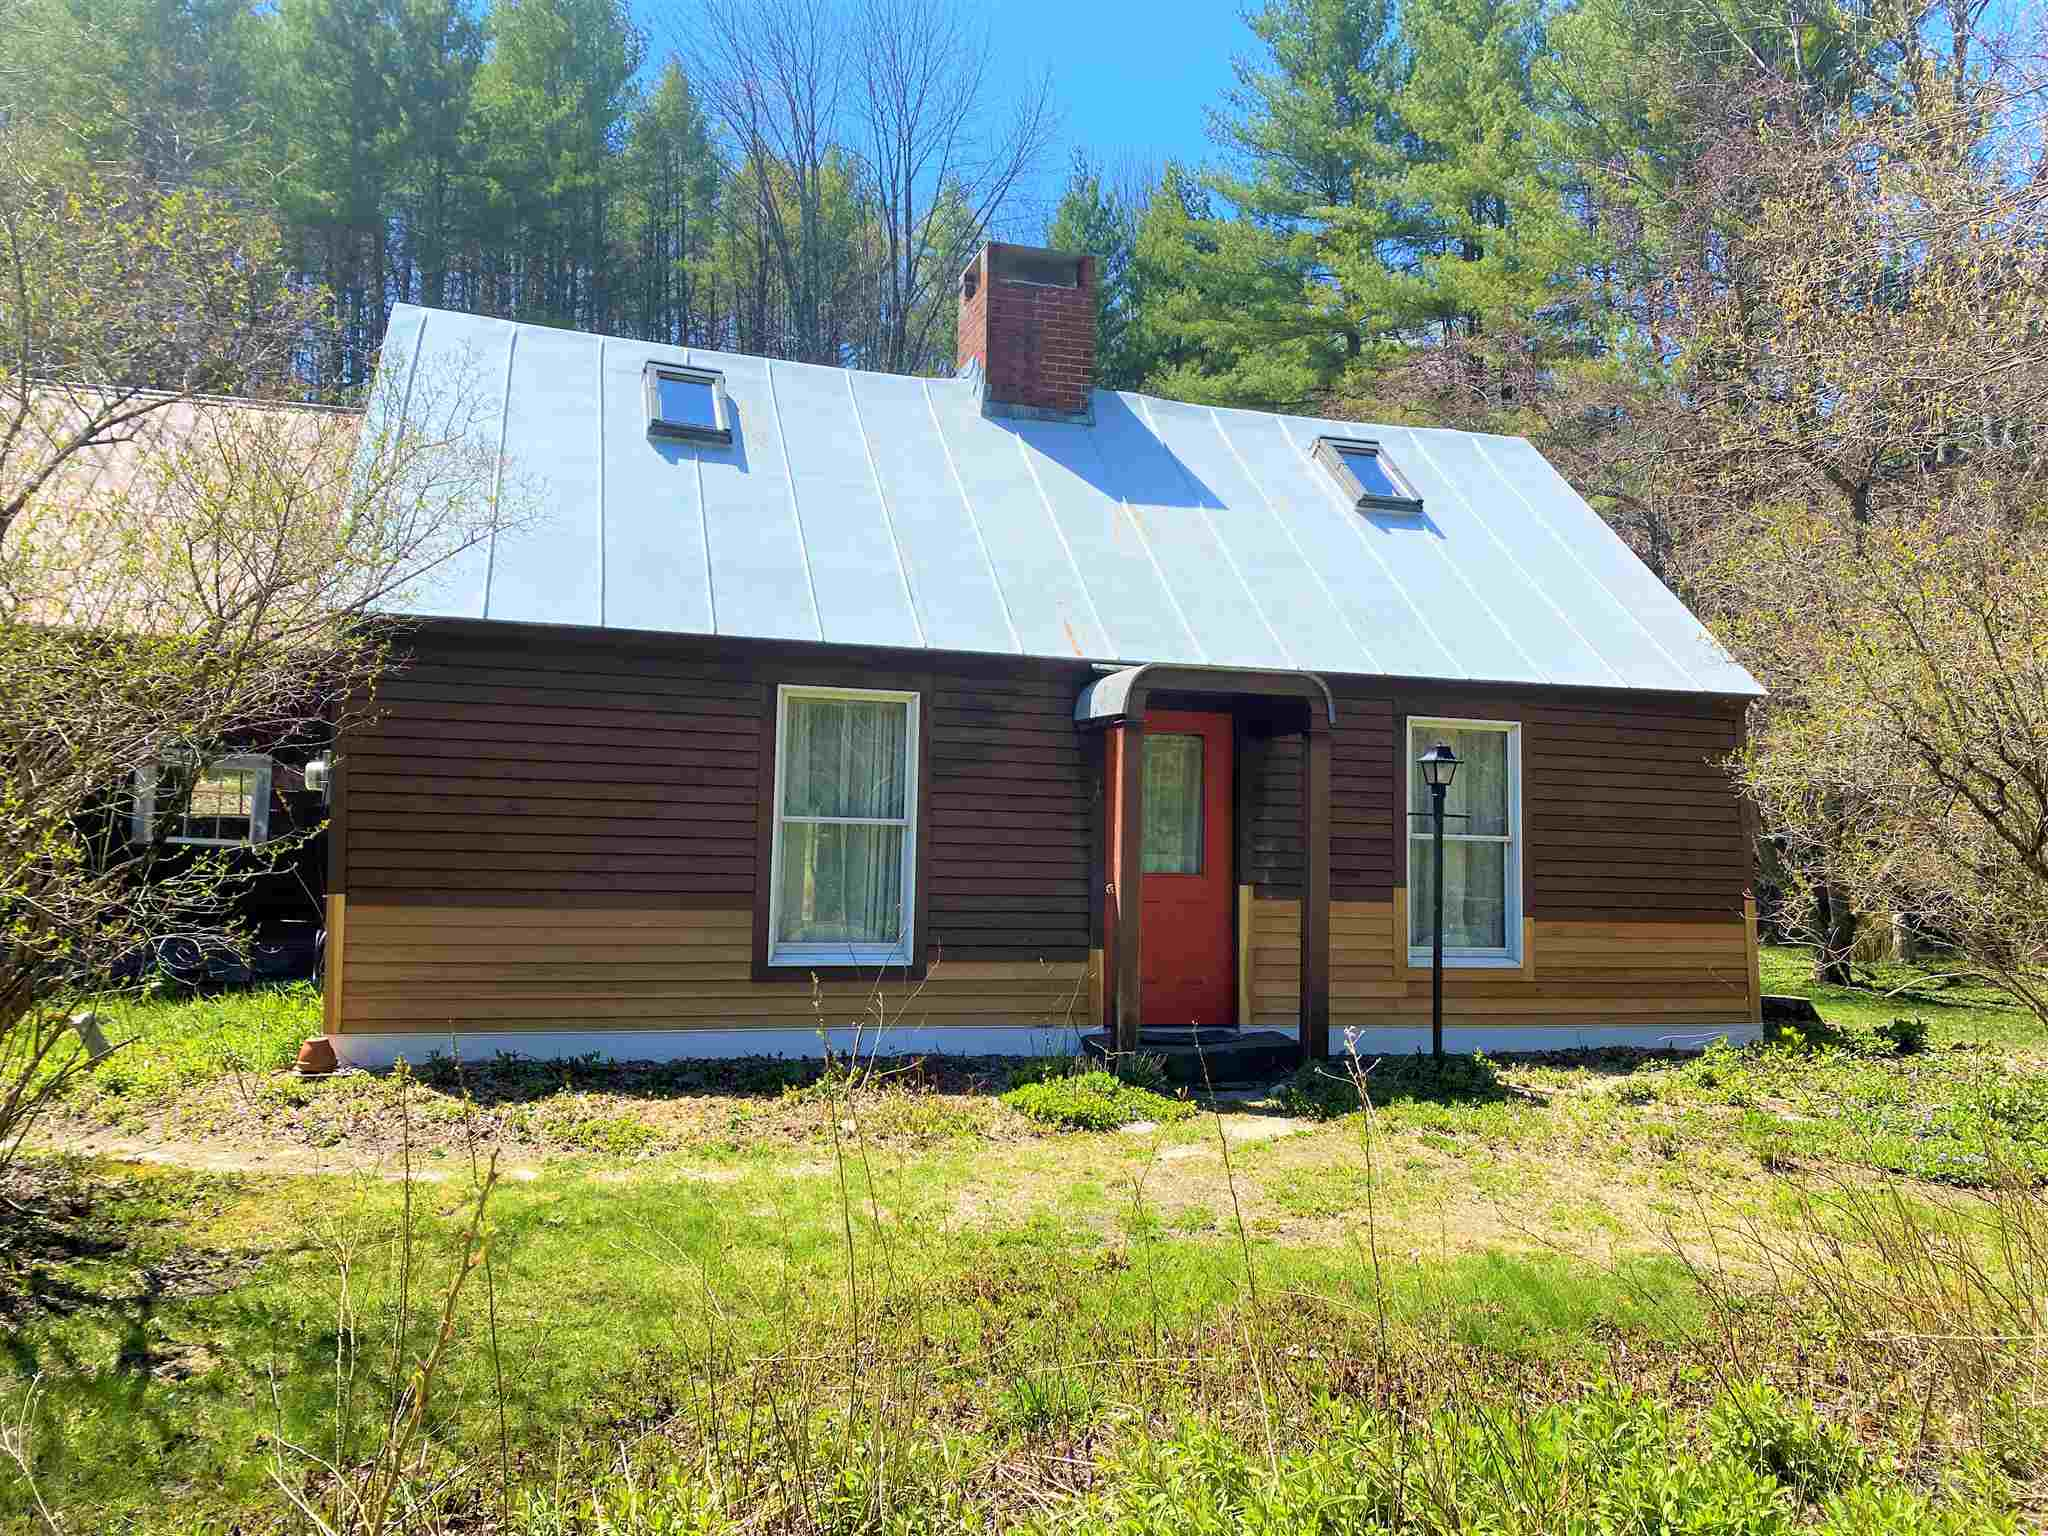 NORWICH VT Homes for sale